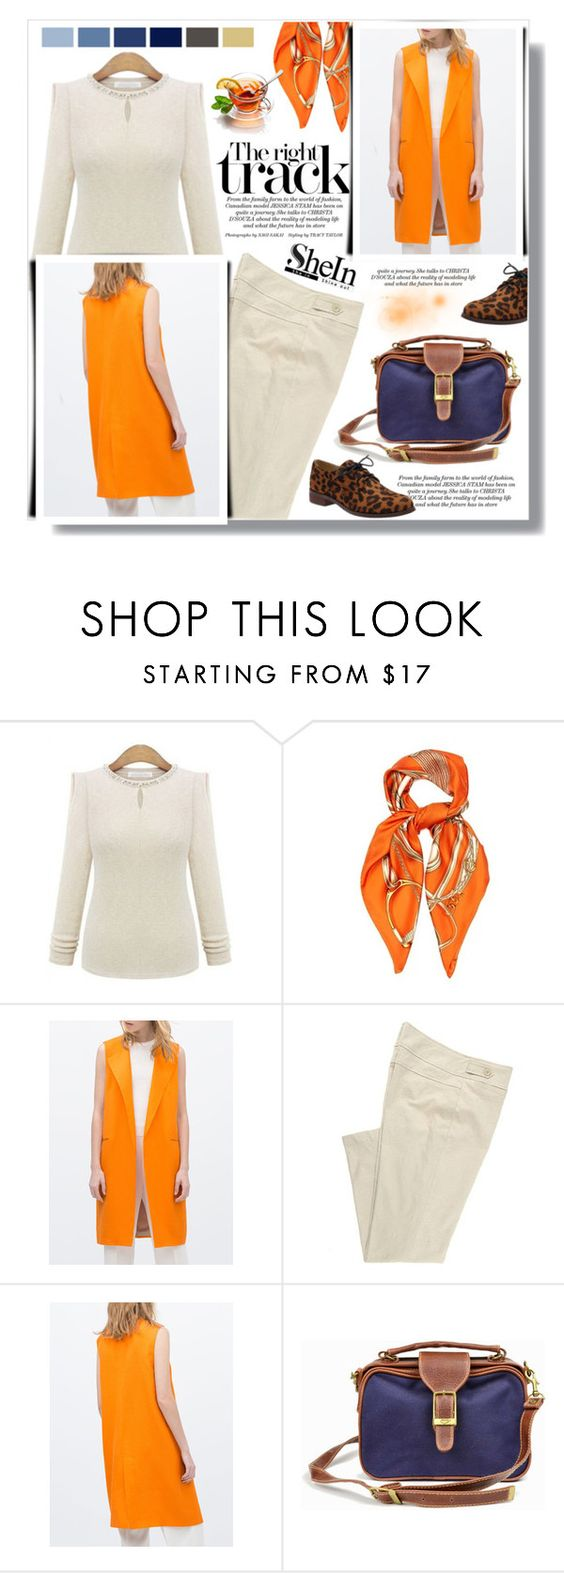 """""""Hijab"""" by sans-moderation ❤ liked on Polyvore featuring Gucci, WithChic, Seed Design, women's clothing, women's fashion, women, female, woman, misses and juniors"""